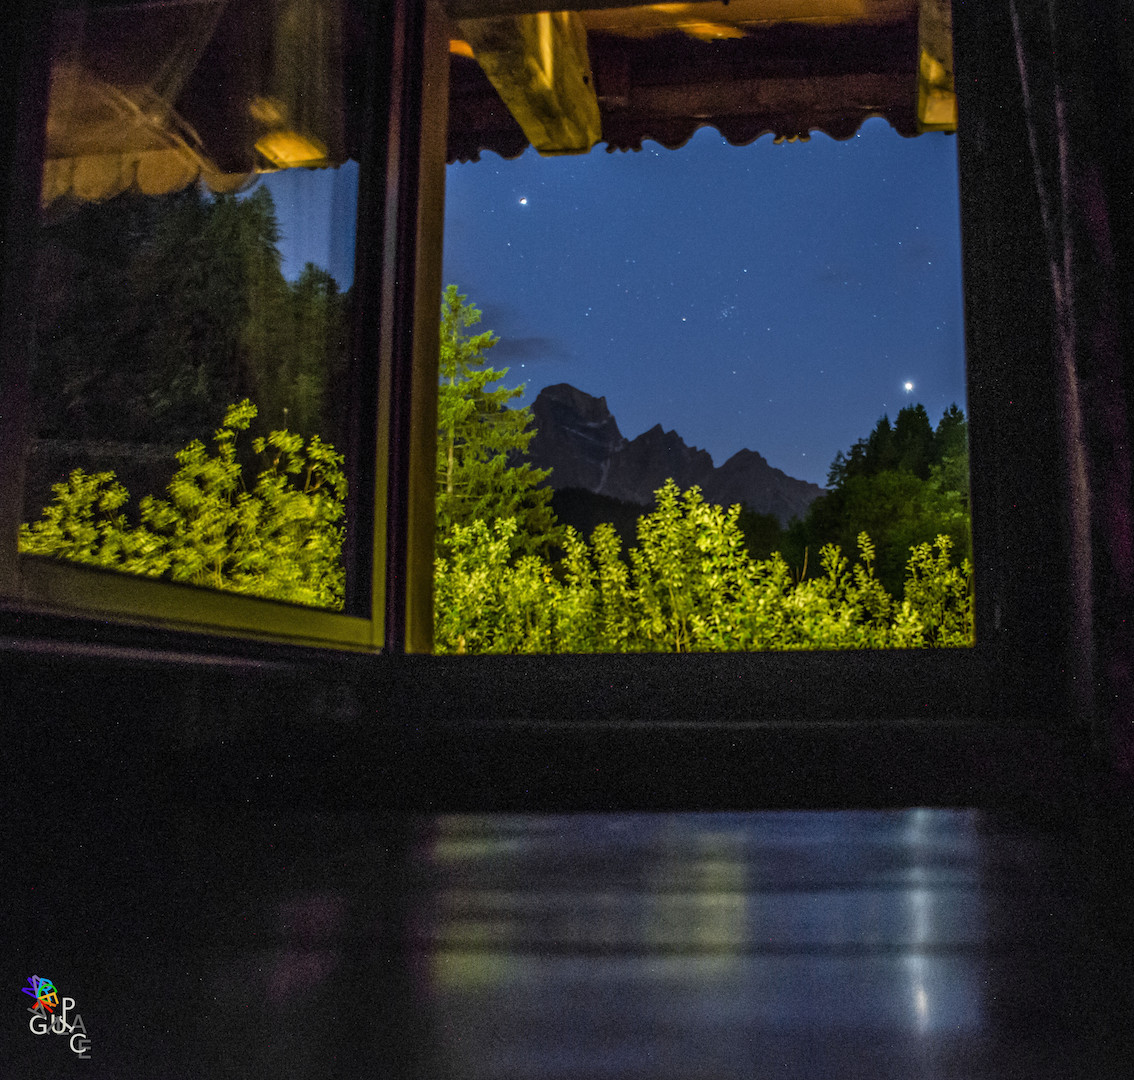 4.6.15 Peaio (Bl) Jupiter and reflection of Venus in my table